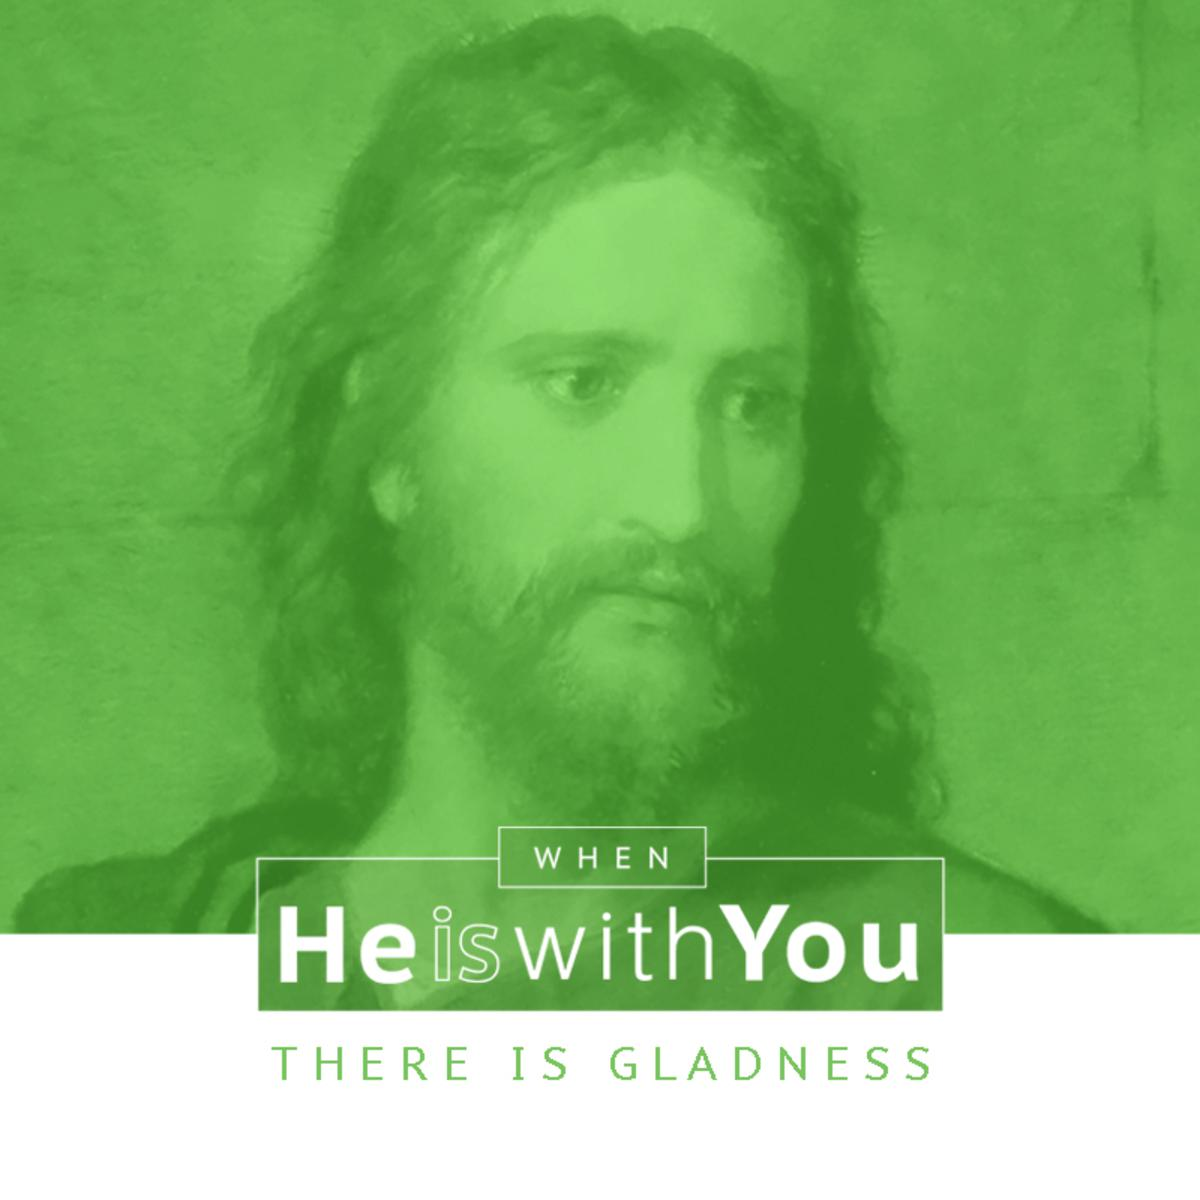 When He is with you there is gladness